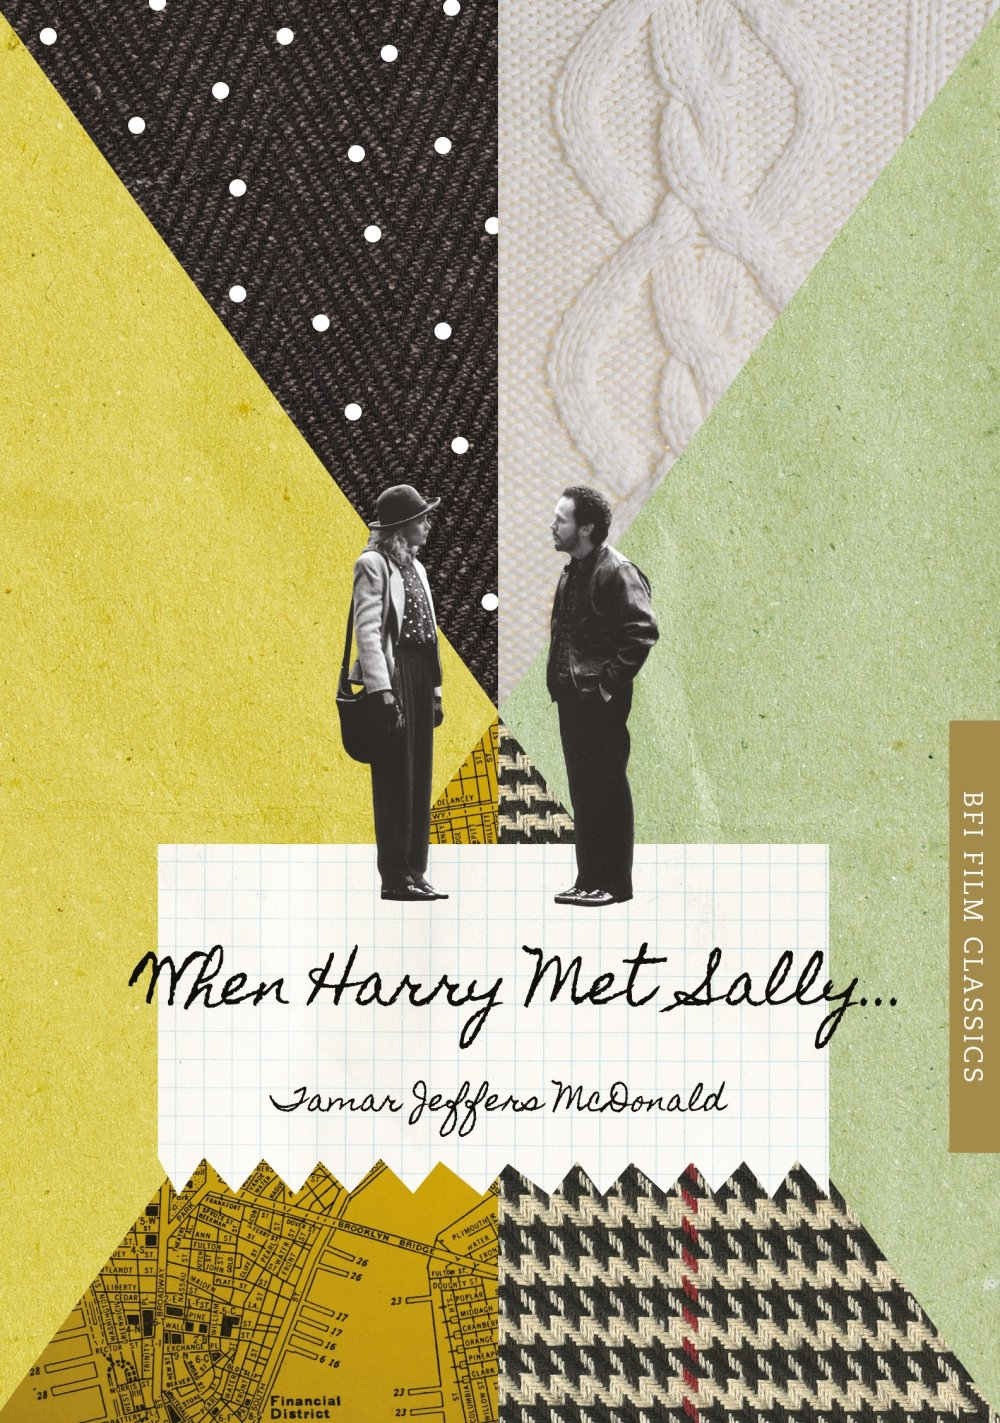 When Harry Met Sally... (BFI Film Classics) by Tamar Jeffers McDonald